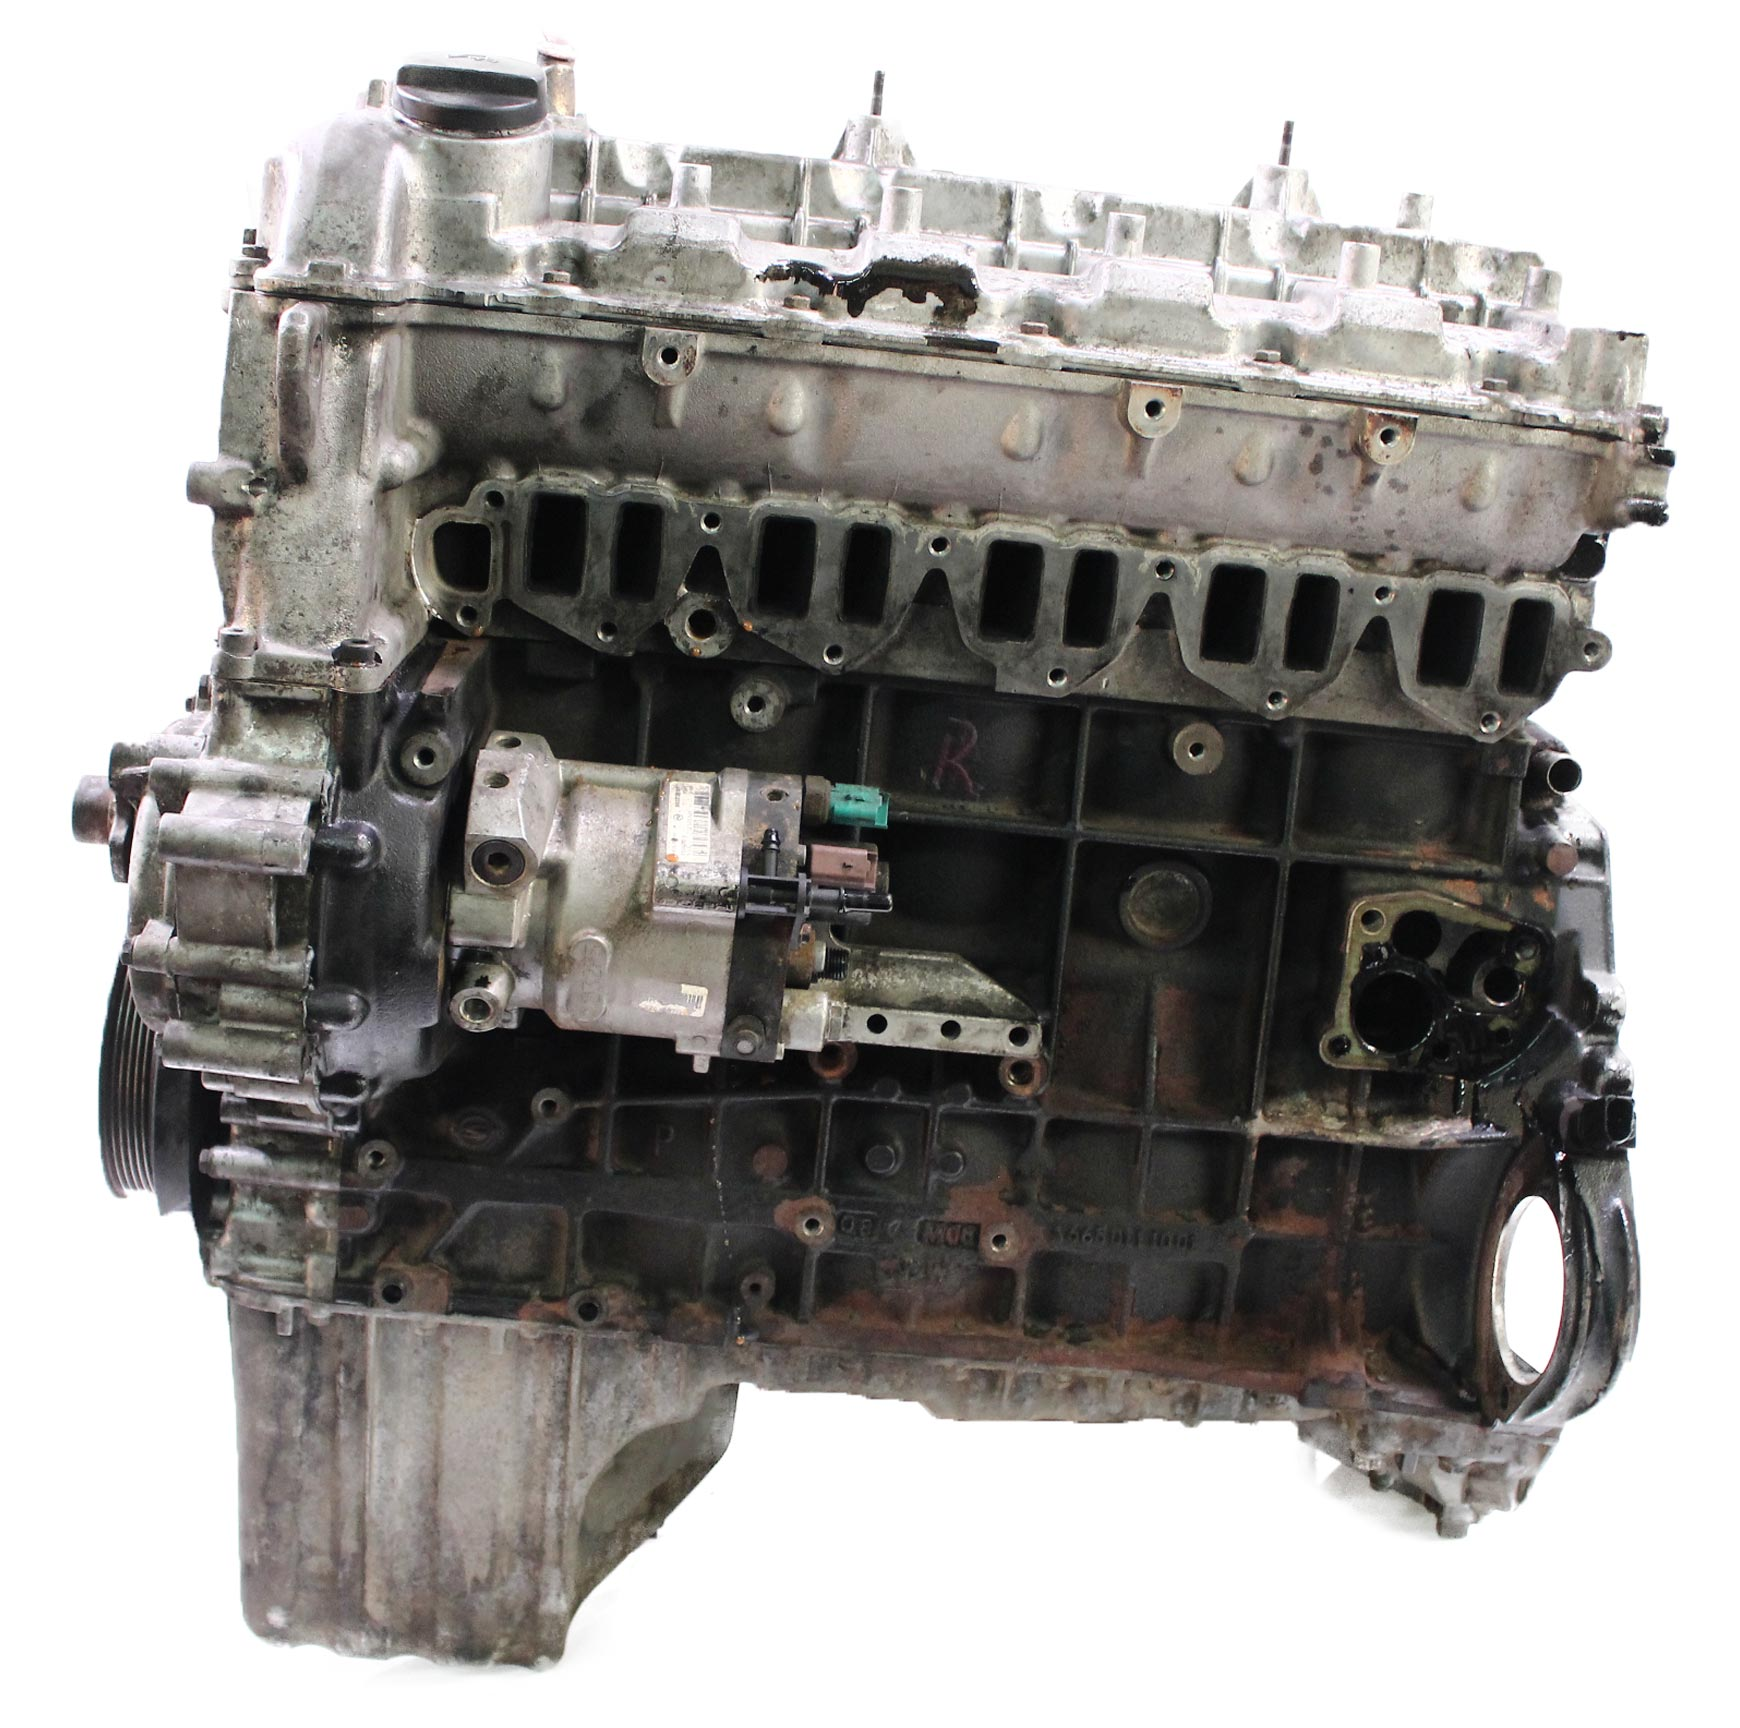 Motor 2005 Ssangyong Stavic Rodius Rexton Kyron 2,7 D Diesel 665.925 D27DT